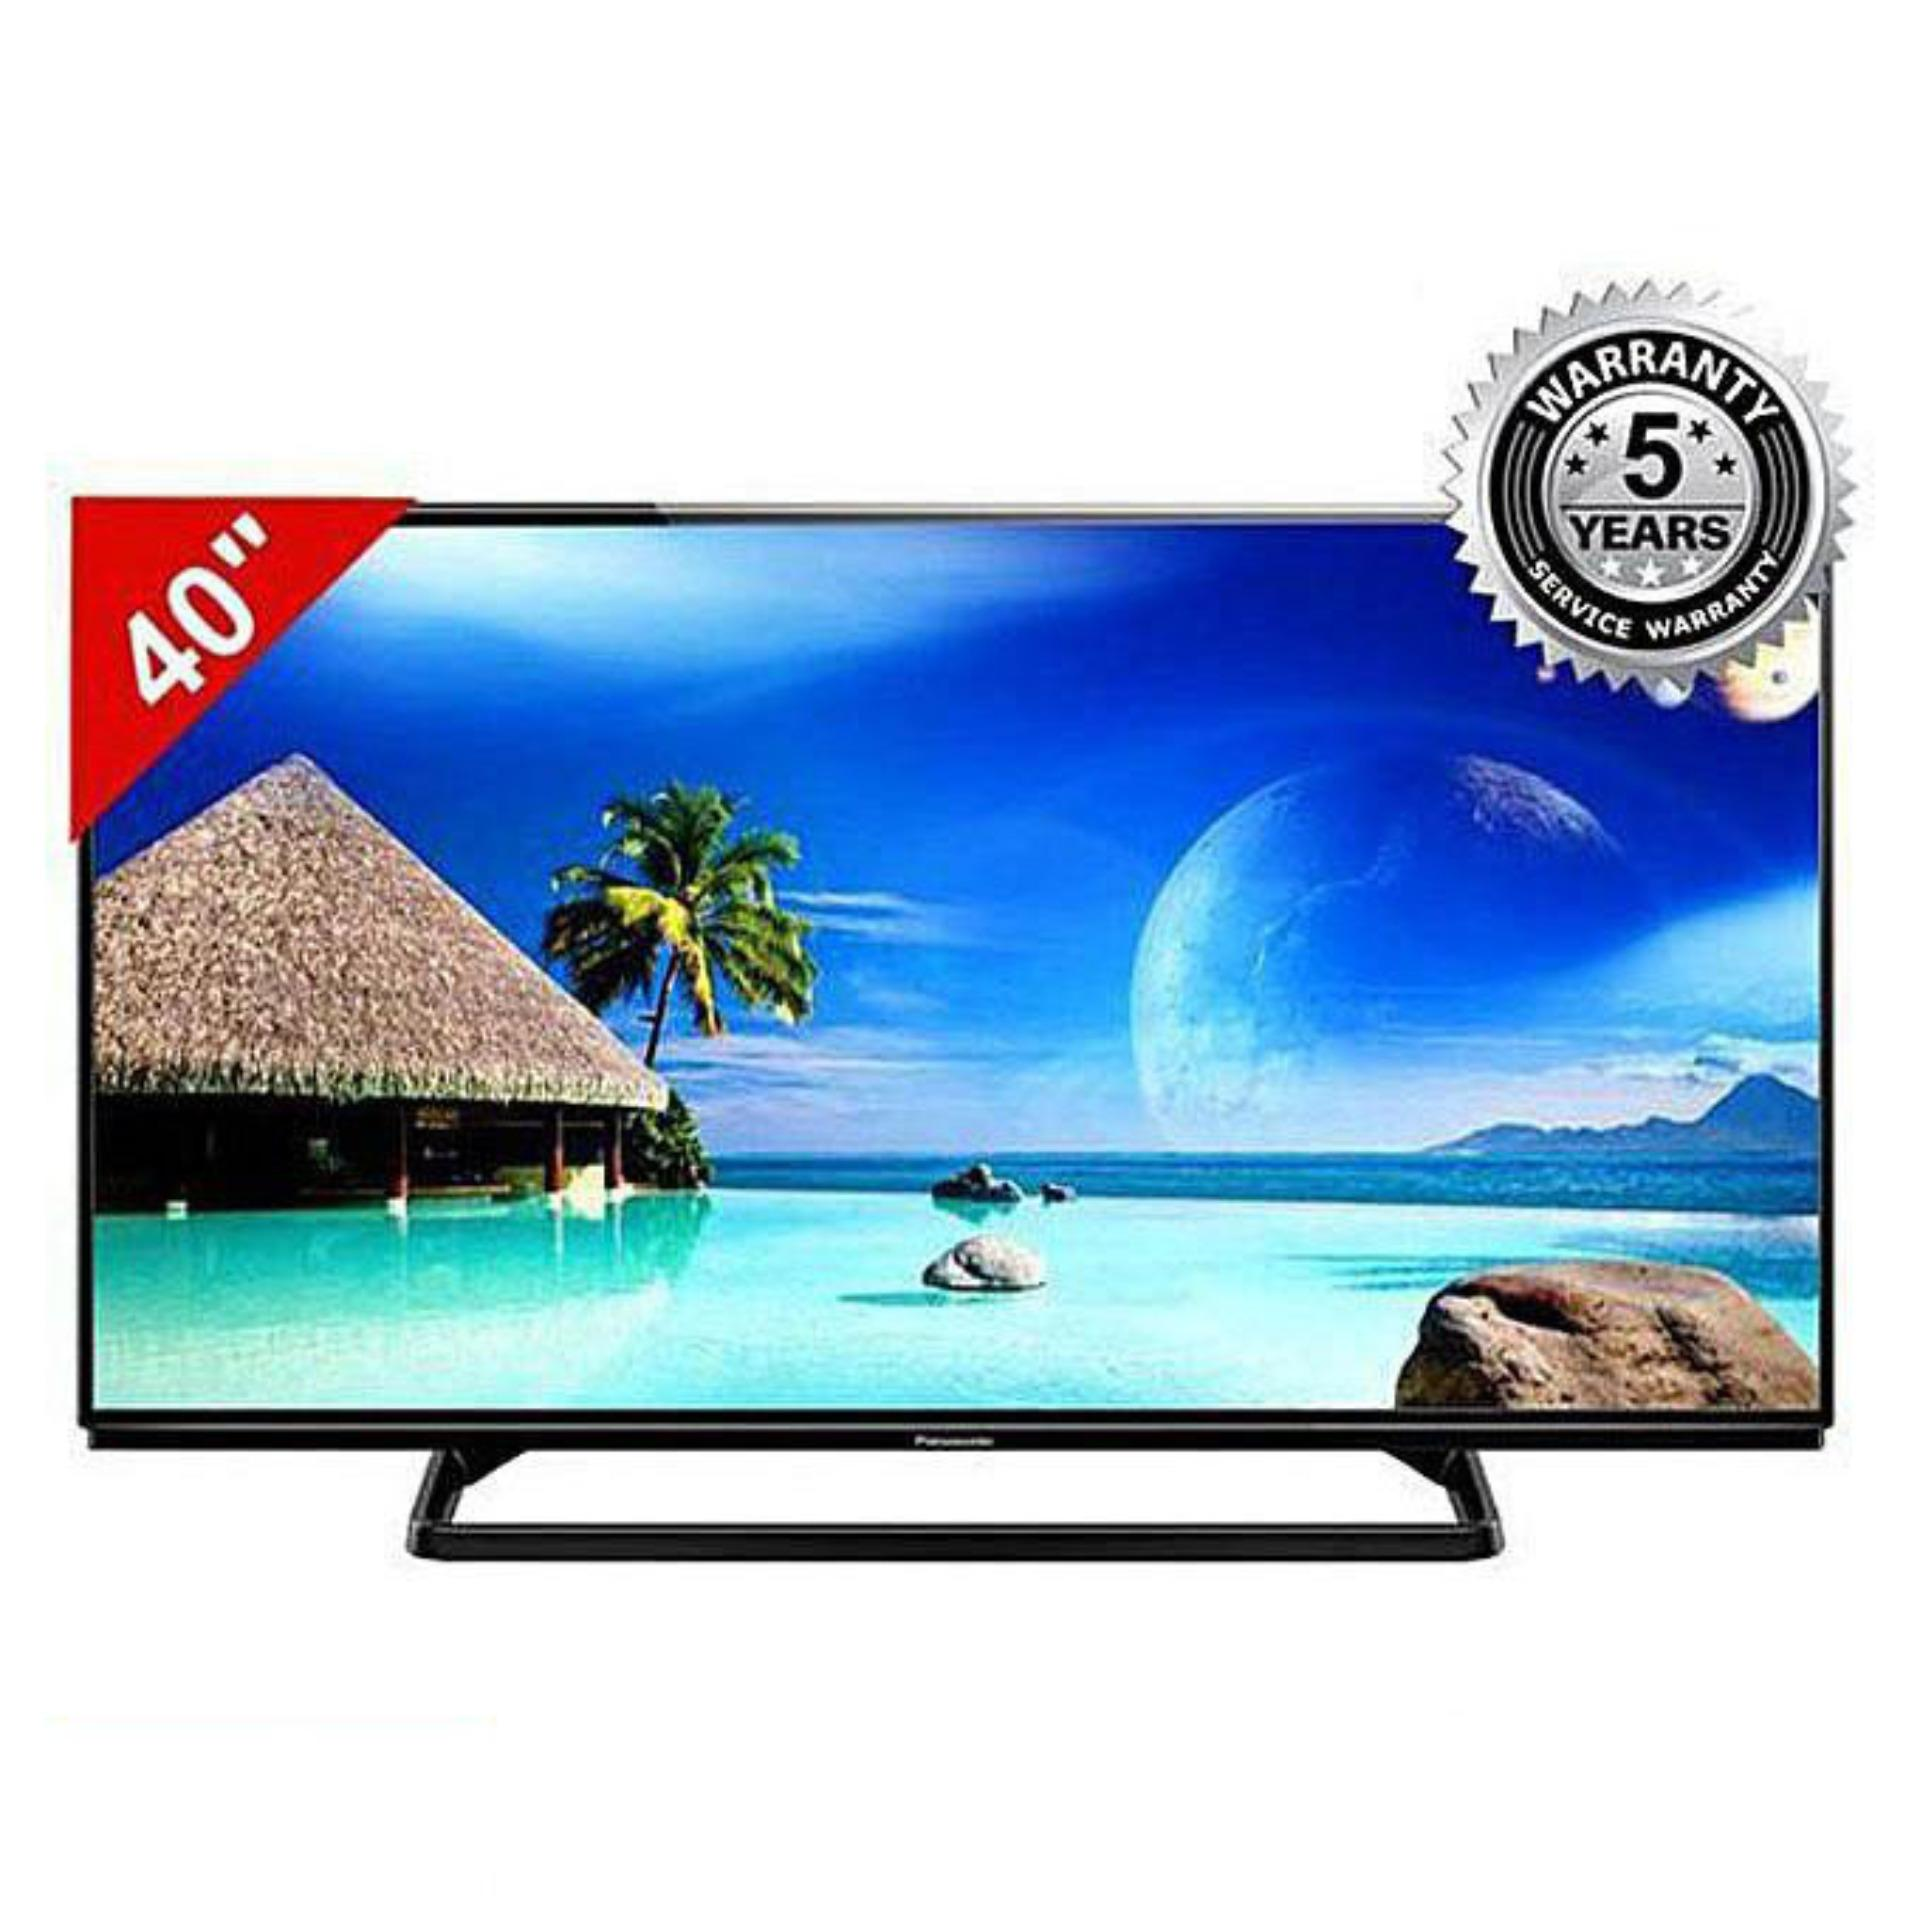 Led Online Shop Buy Panasonic A To Z Online Shop Led Televisions At Best Prices